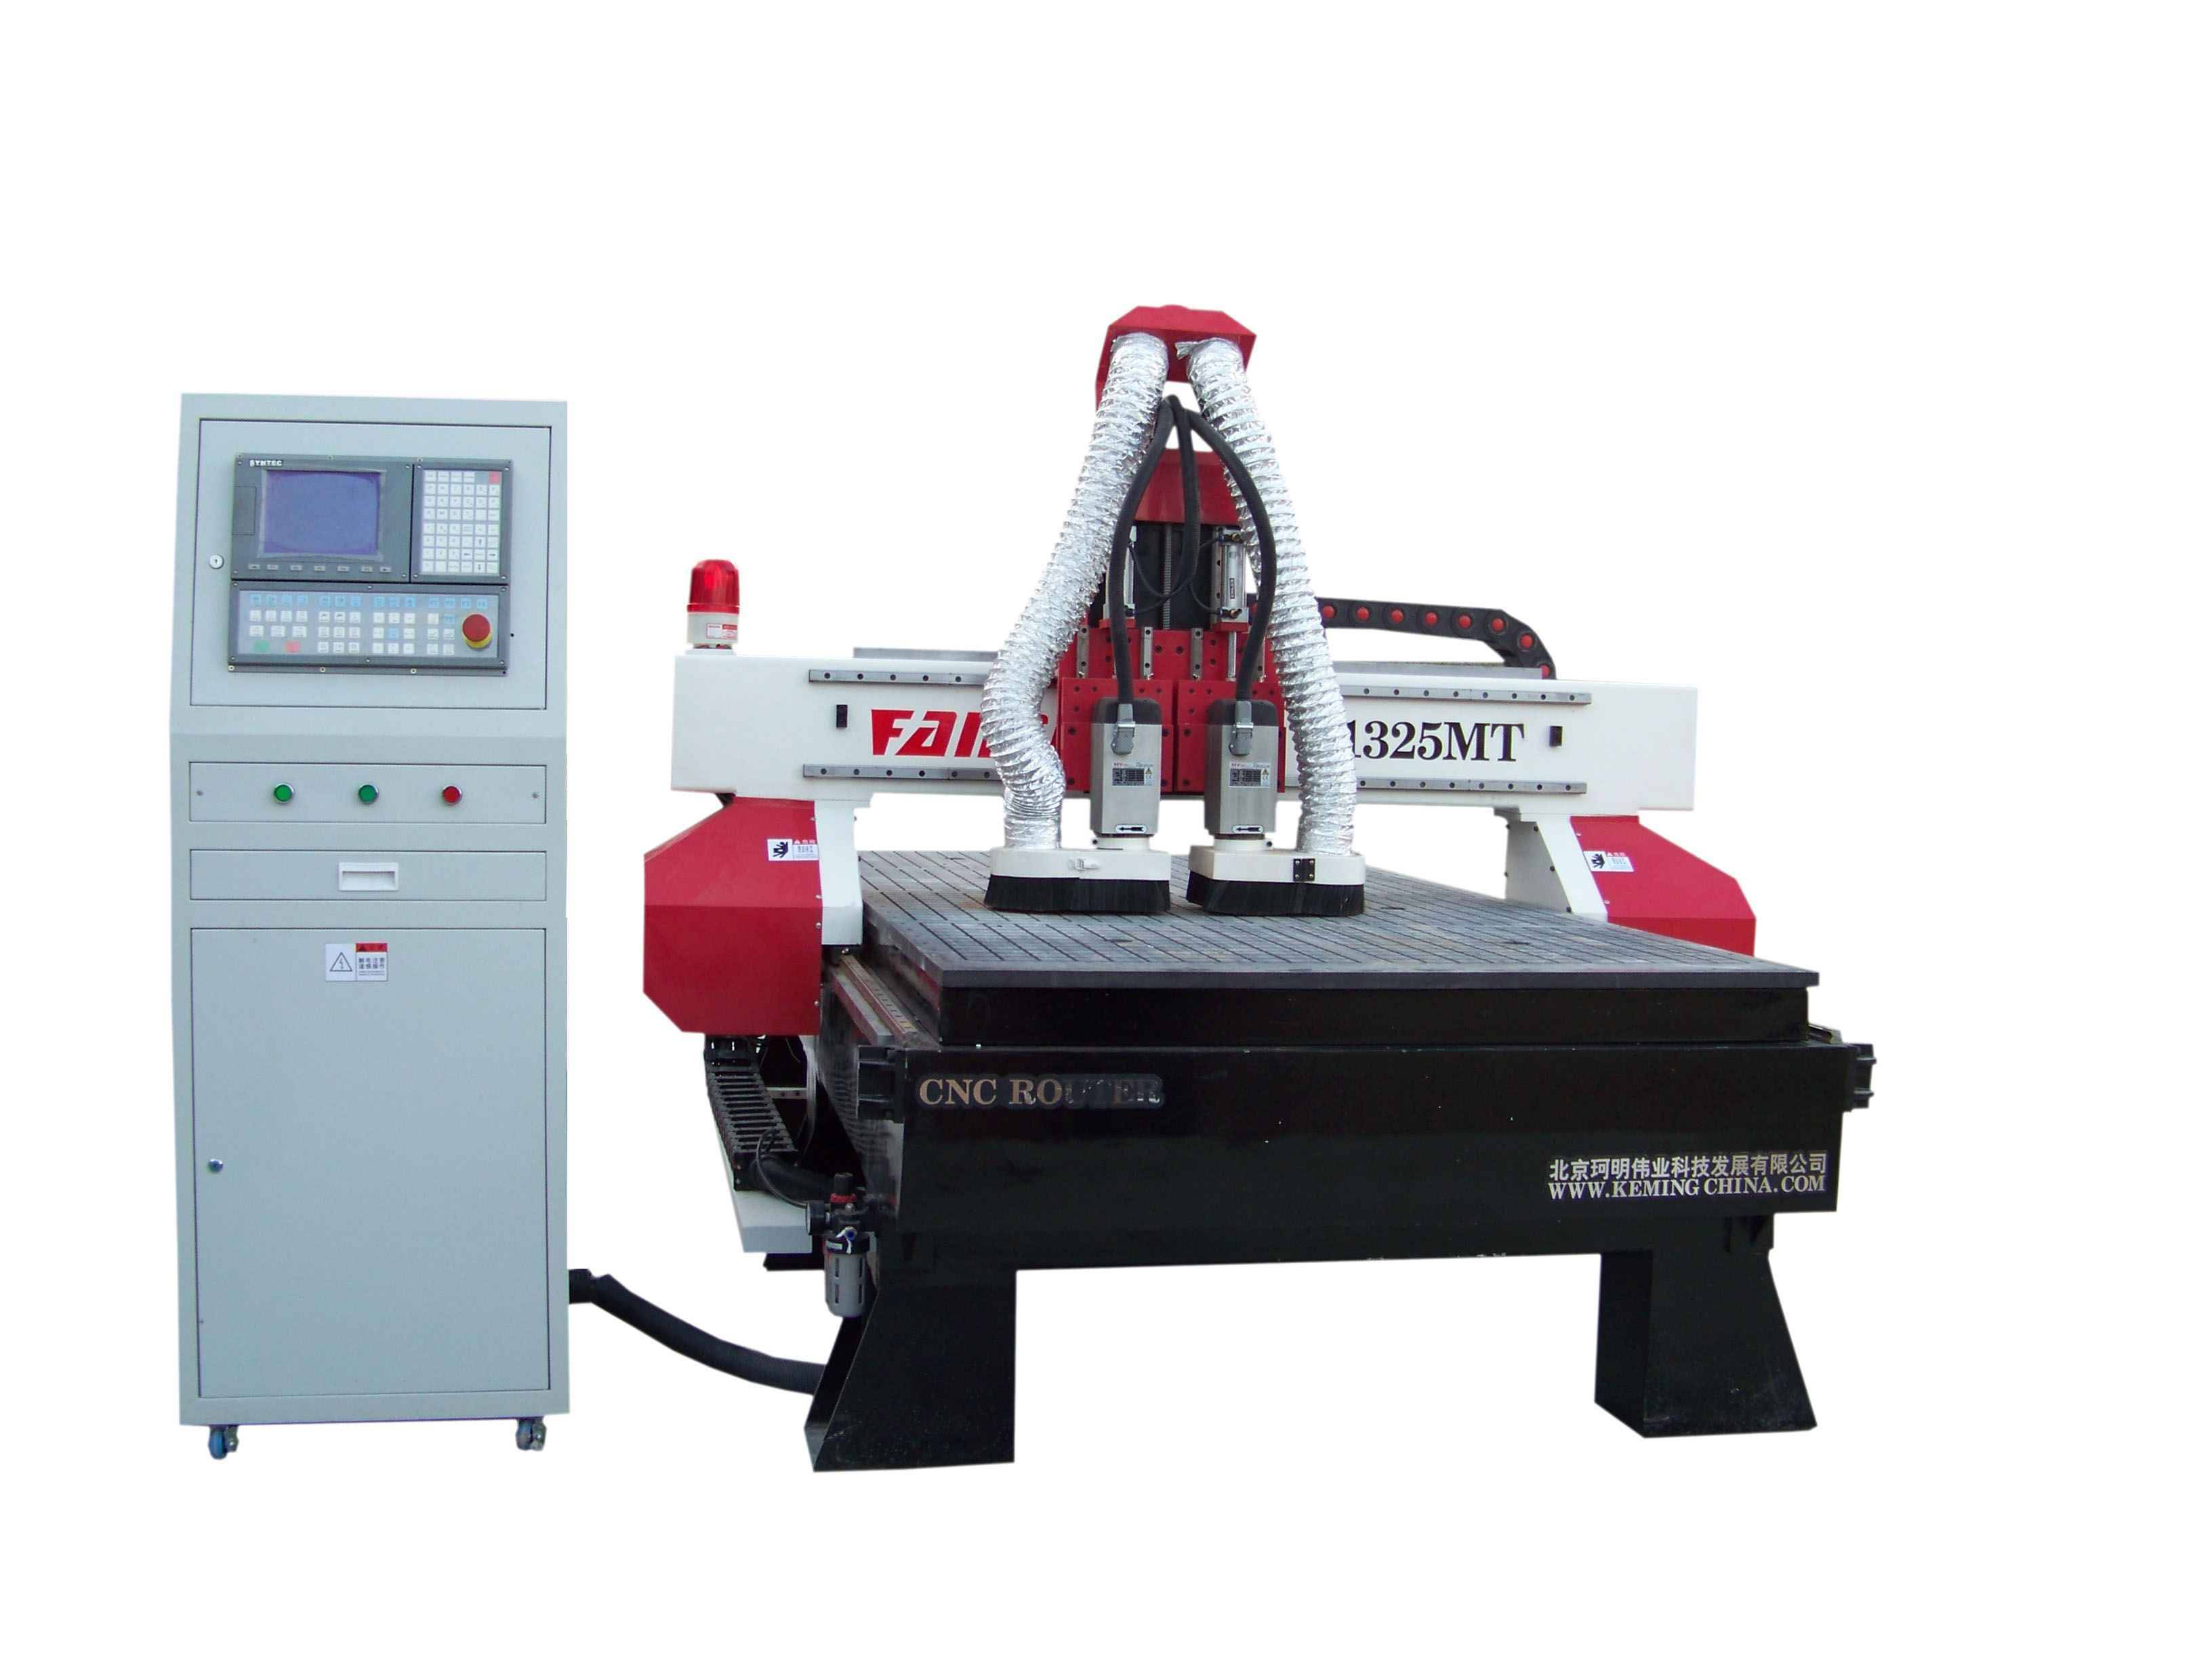 cnc router with ac servo motor